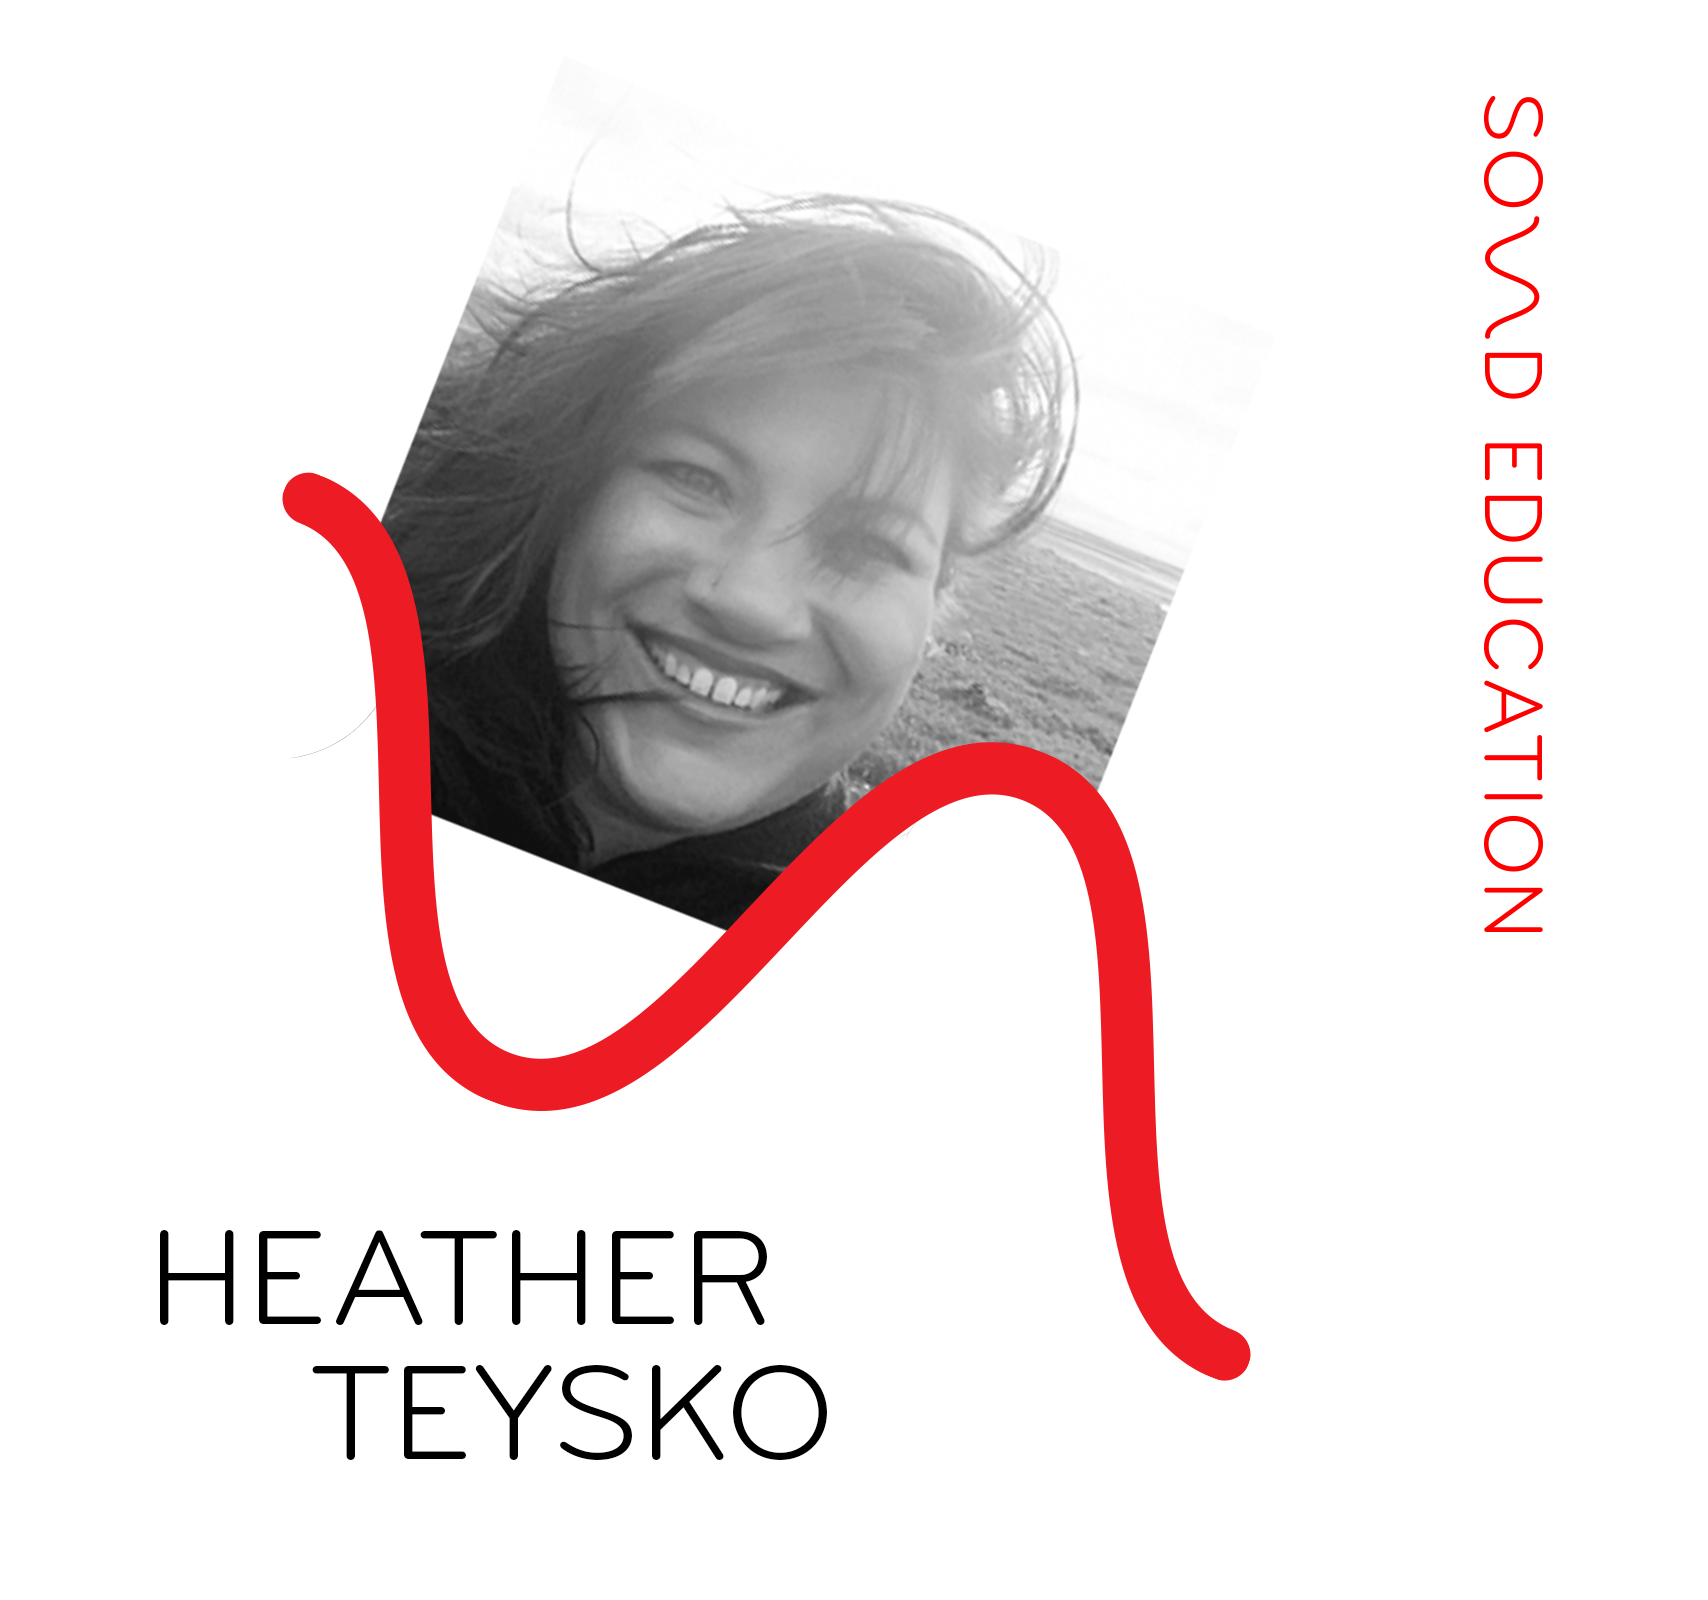 teysko_heather.png